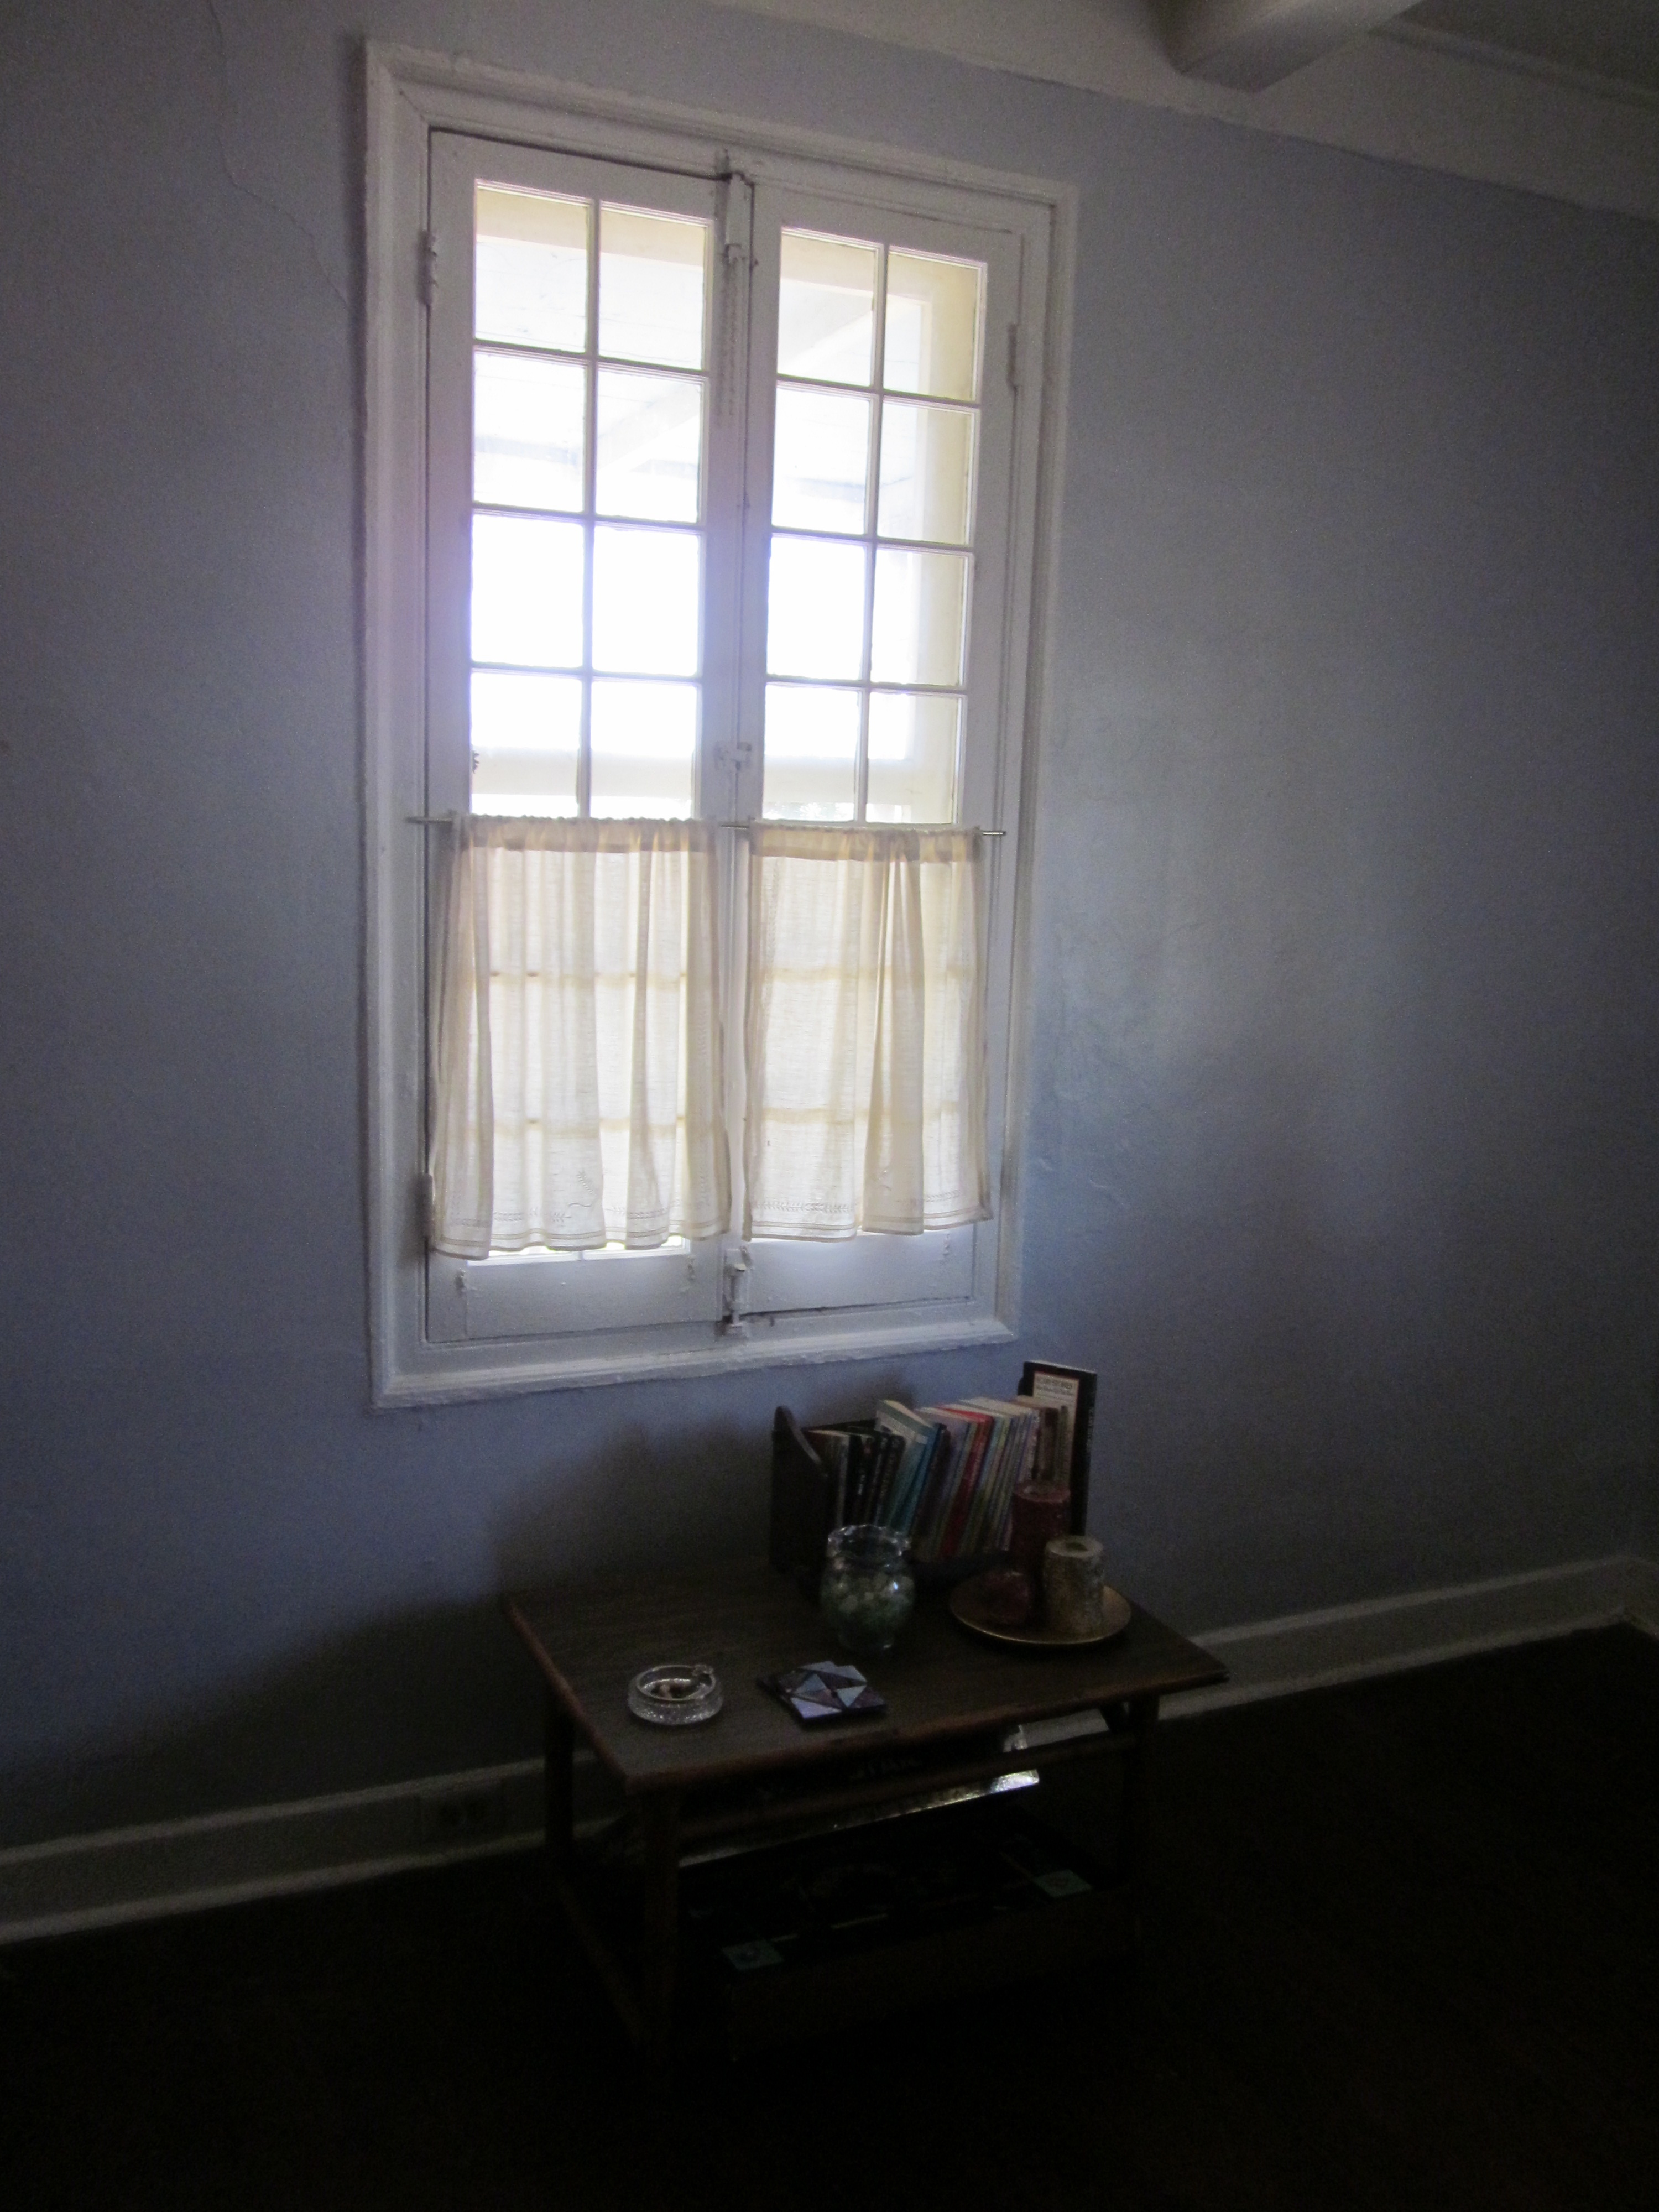 file nmp 1780s house interior bedroom 2 window jpg wikimedia commons